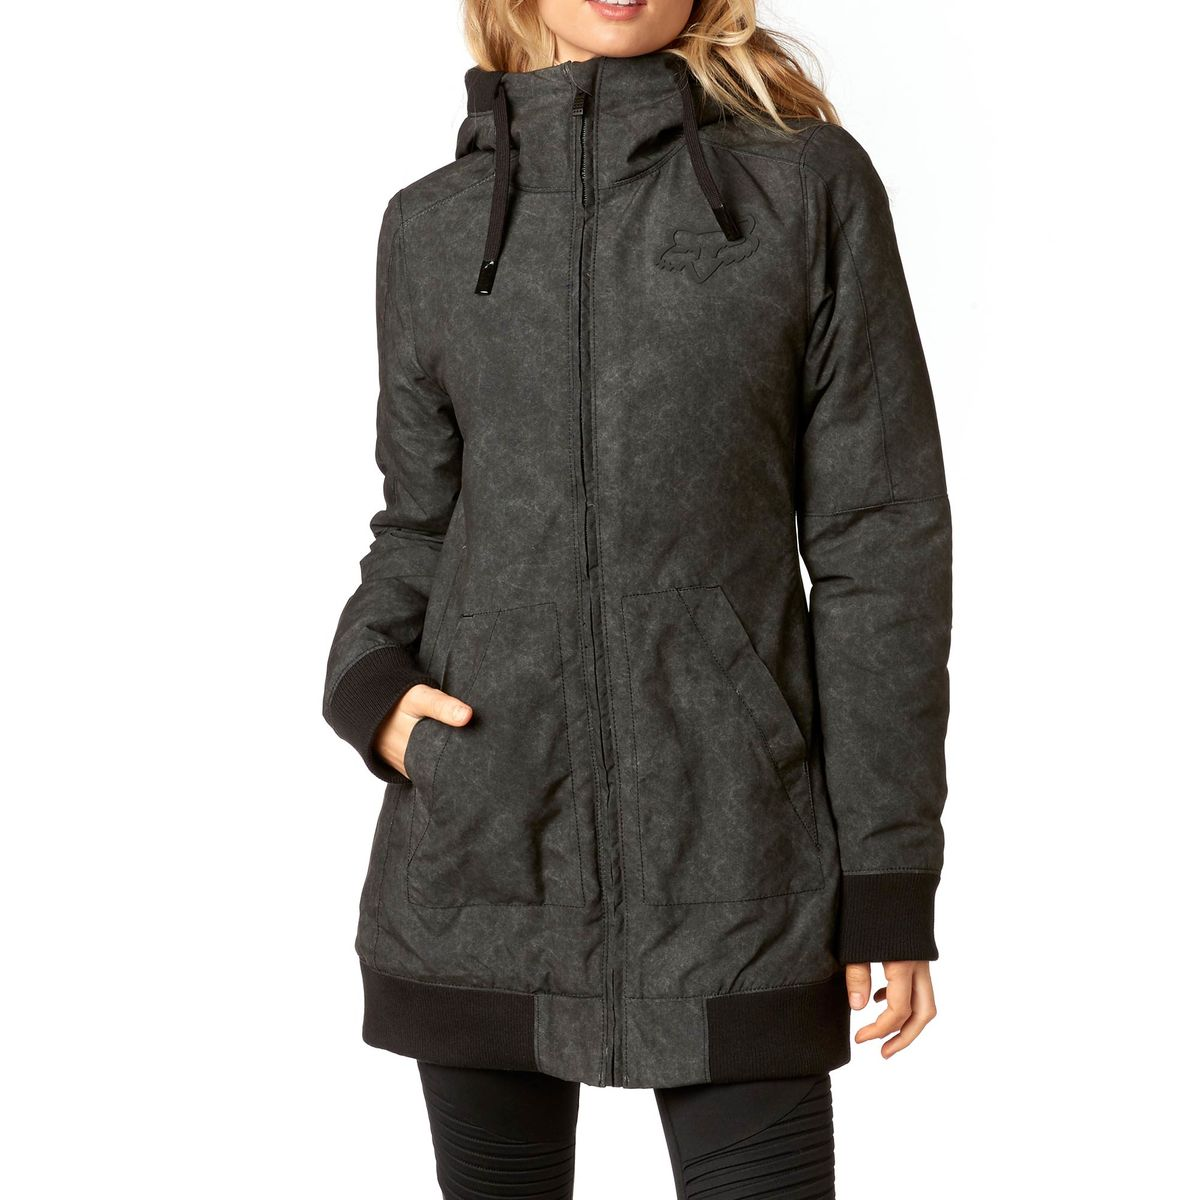 METRICK SHERPA LINED JACKET Damen Mantel